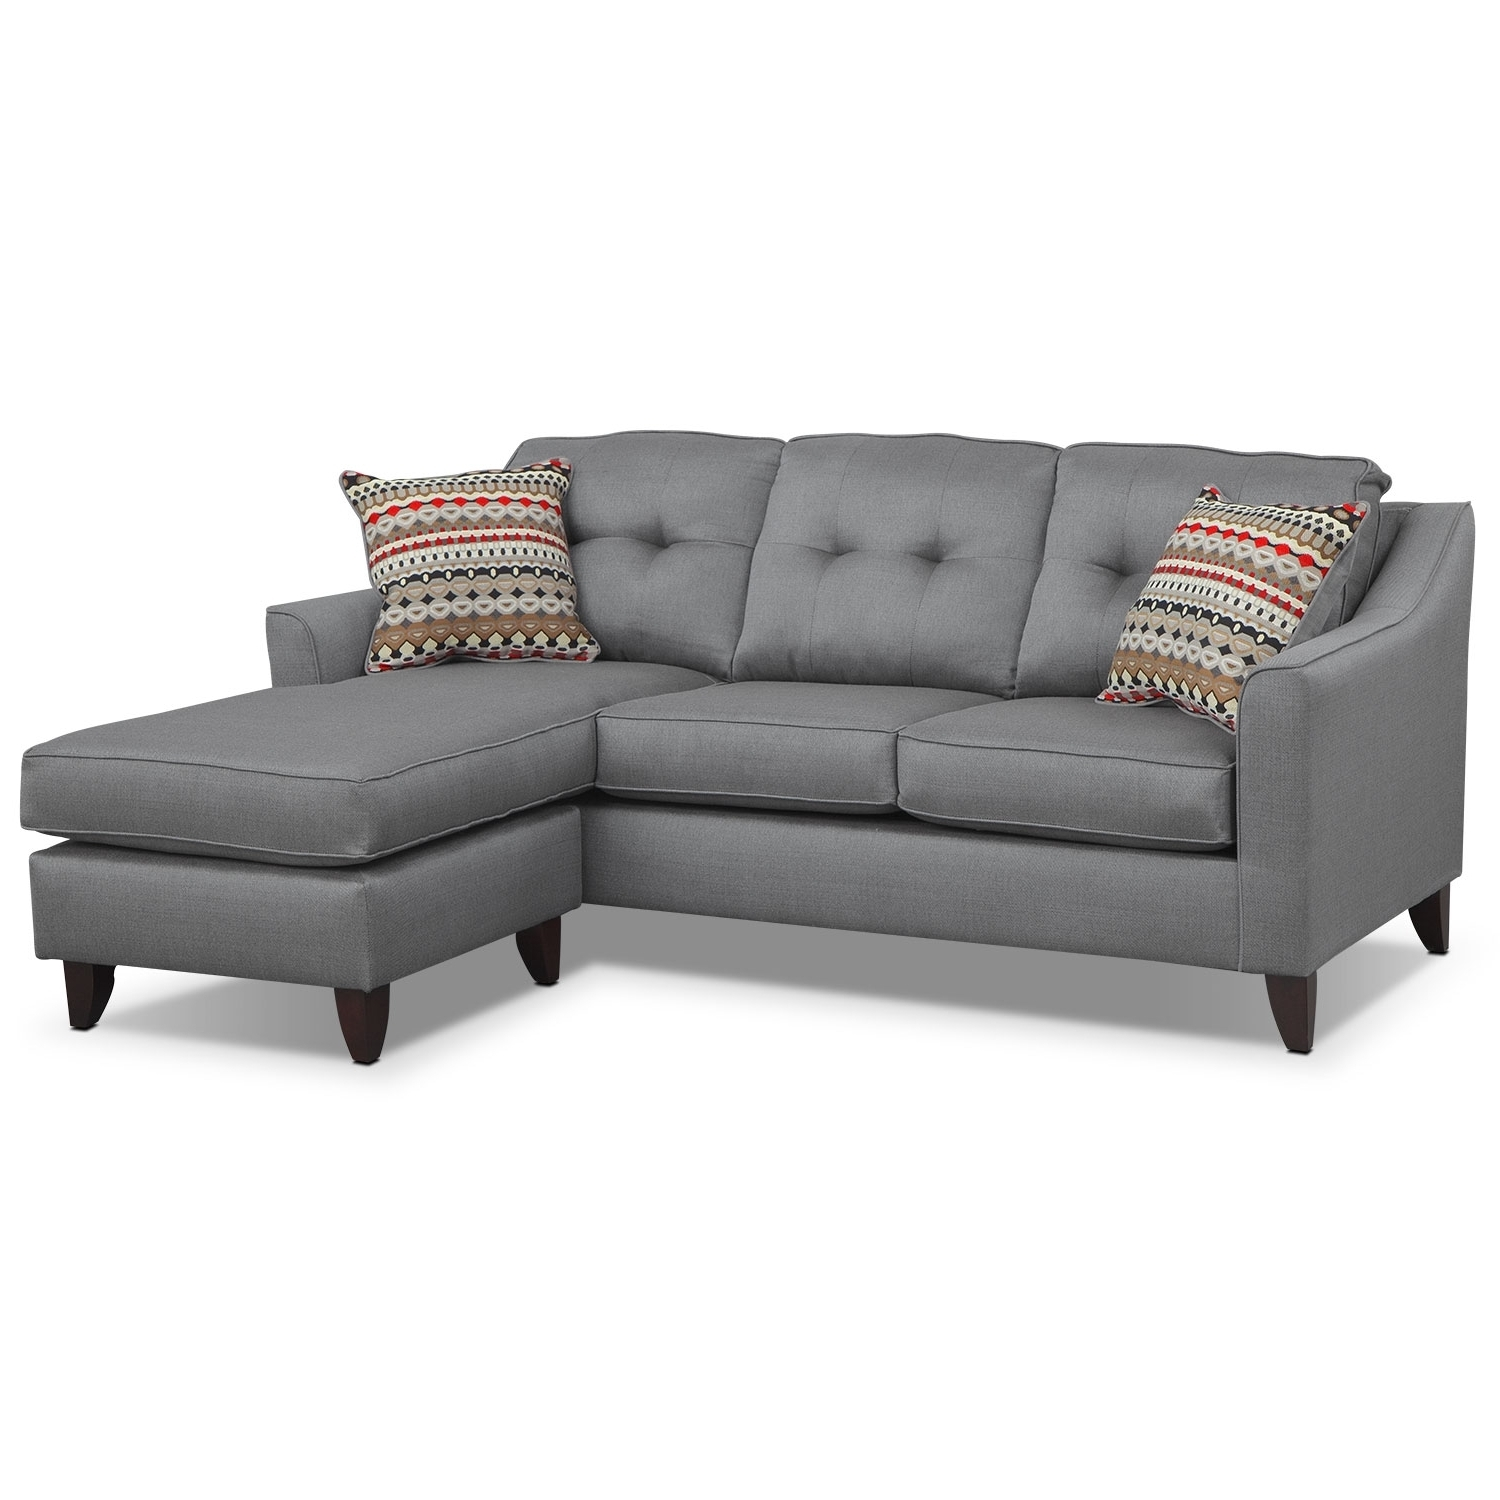 2017 Sofa Design Ideas: Dark Couch Grey Sofa Chaise Light Design Gray Intended For Grey Sofa Chaises (View 1 of 15)